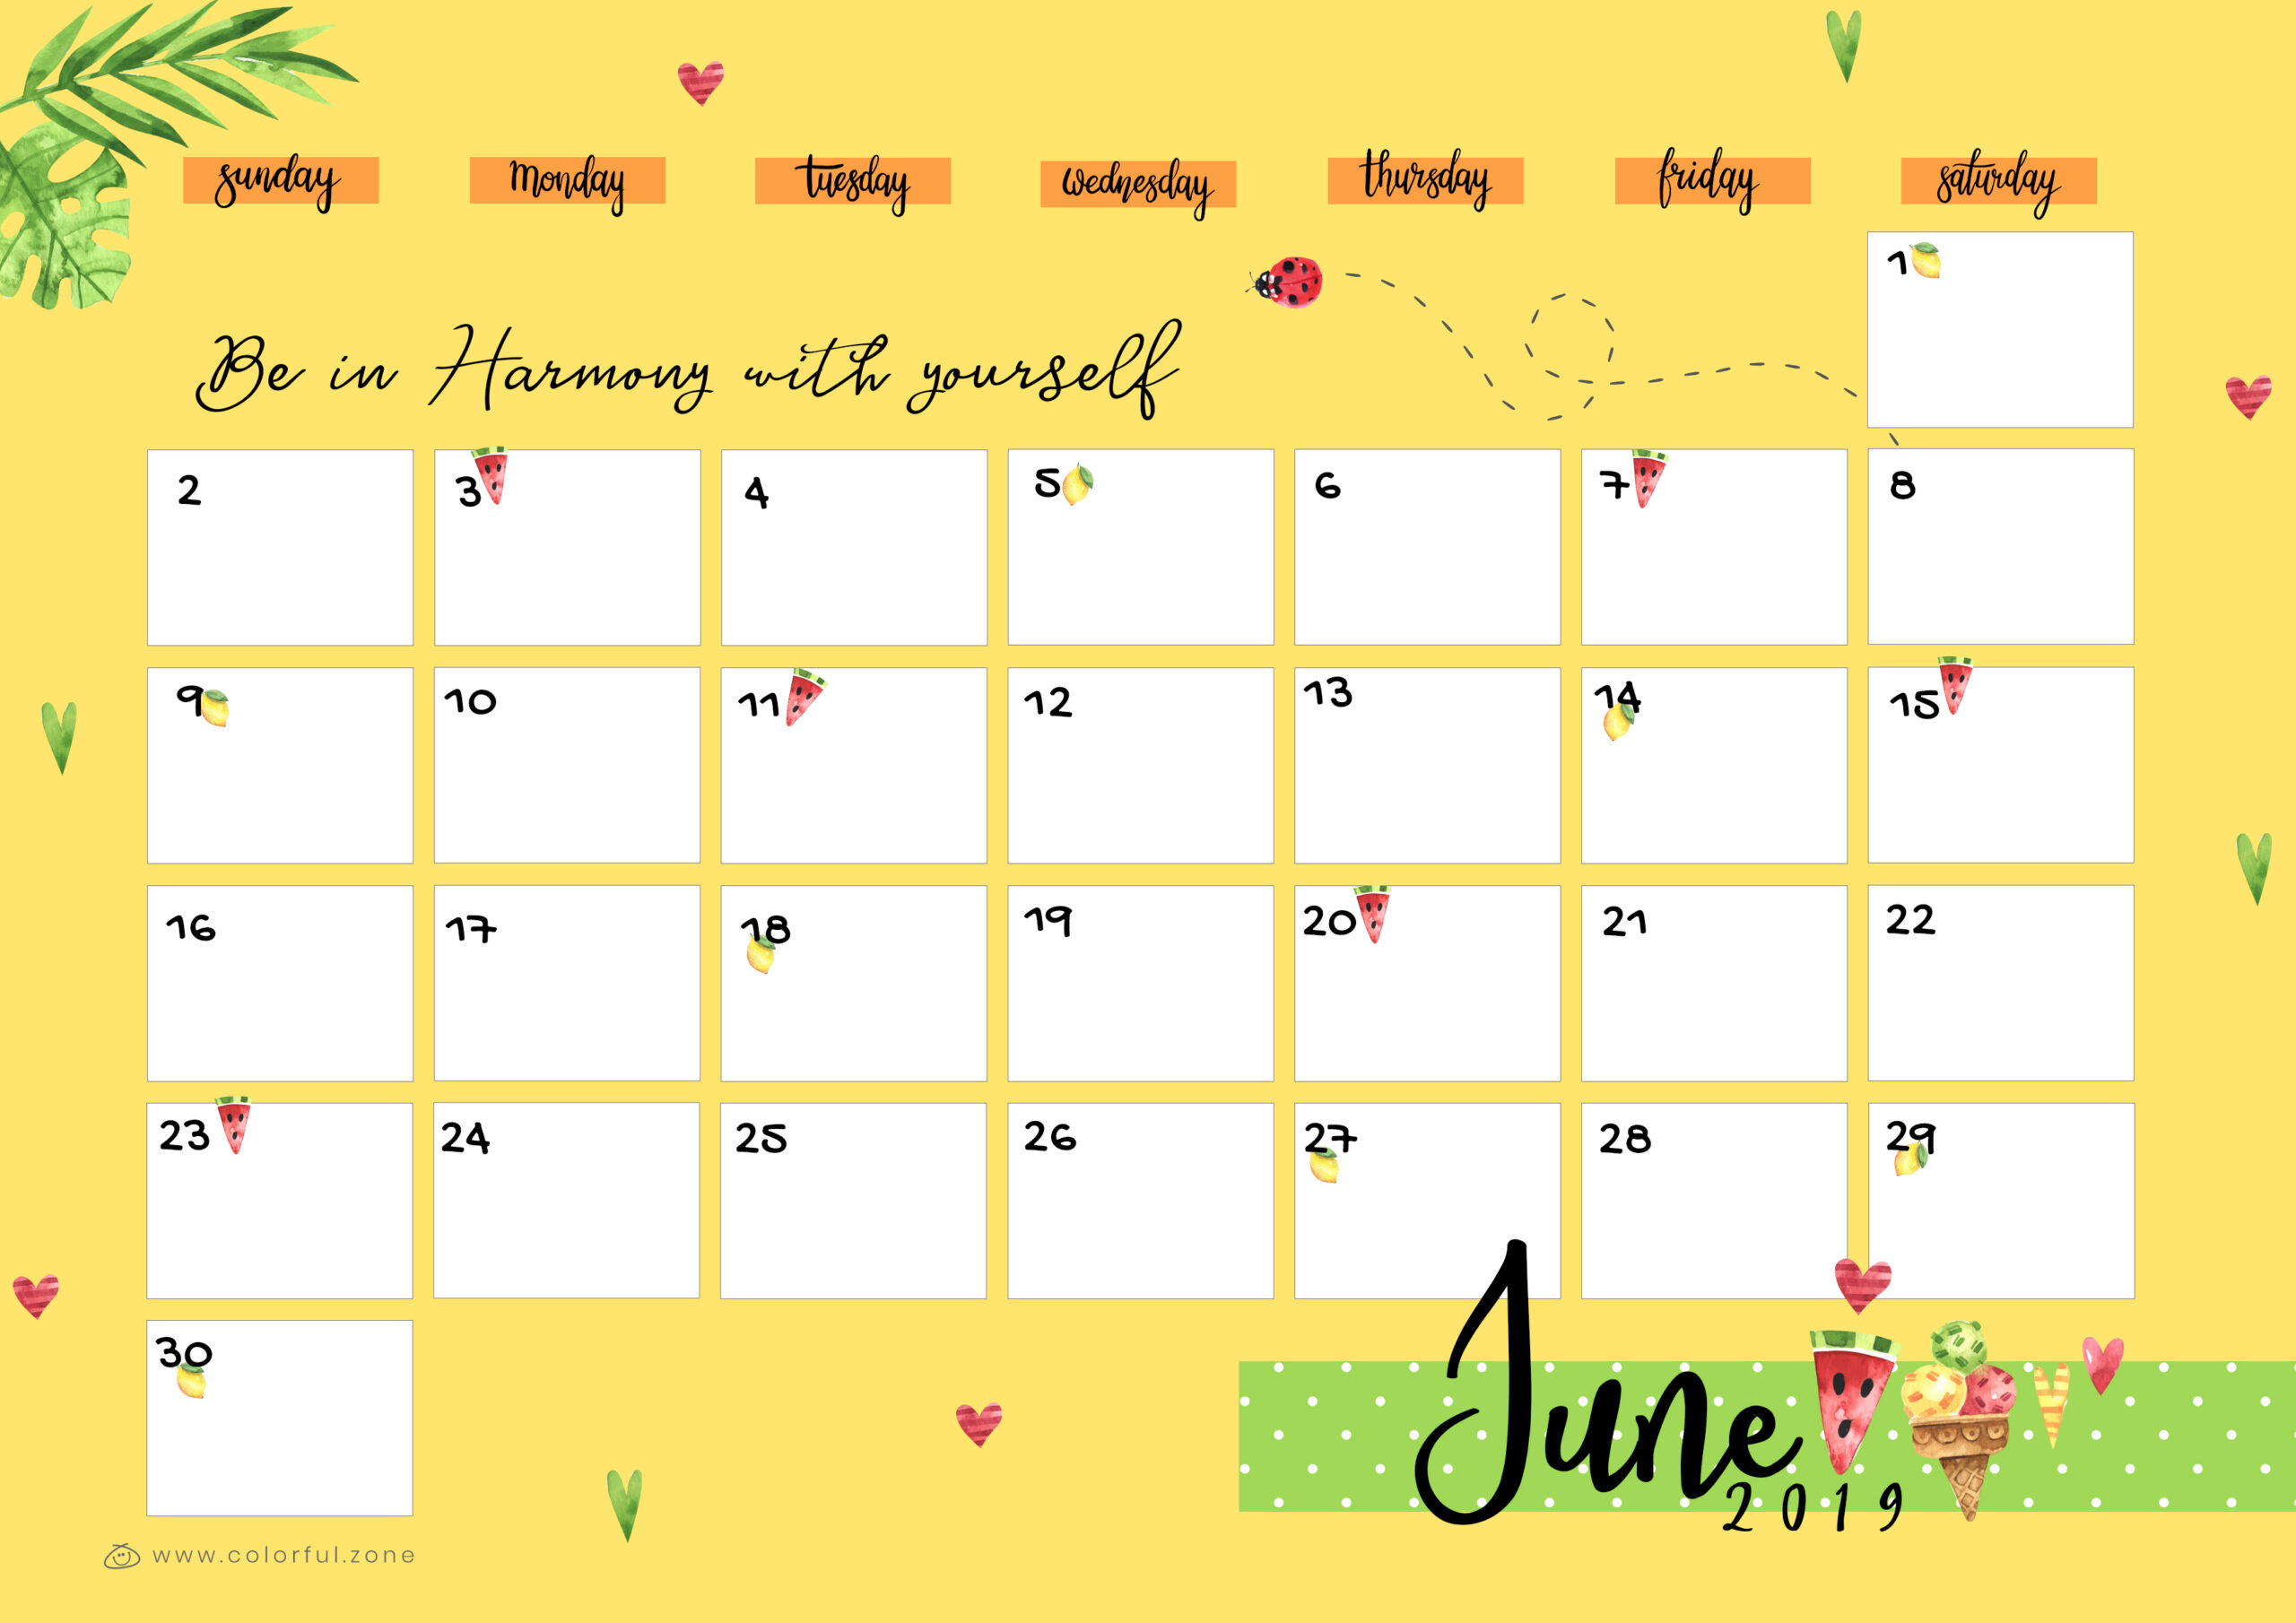 Free Printable Colorful Calendar 2019   Colorful Zone